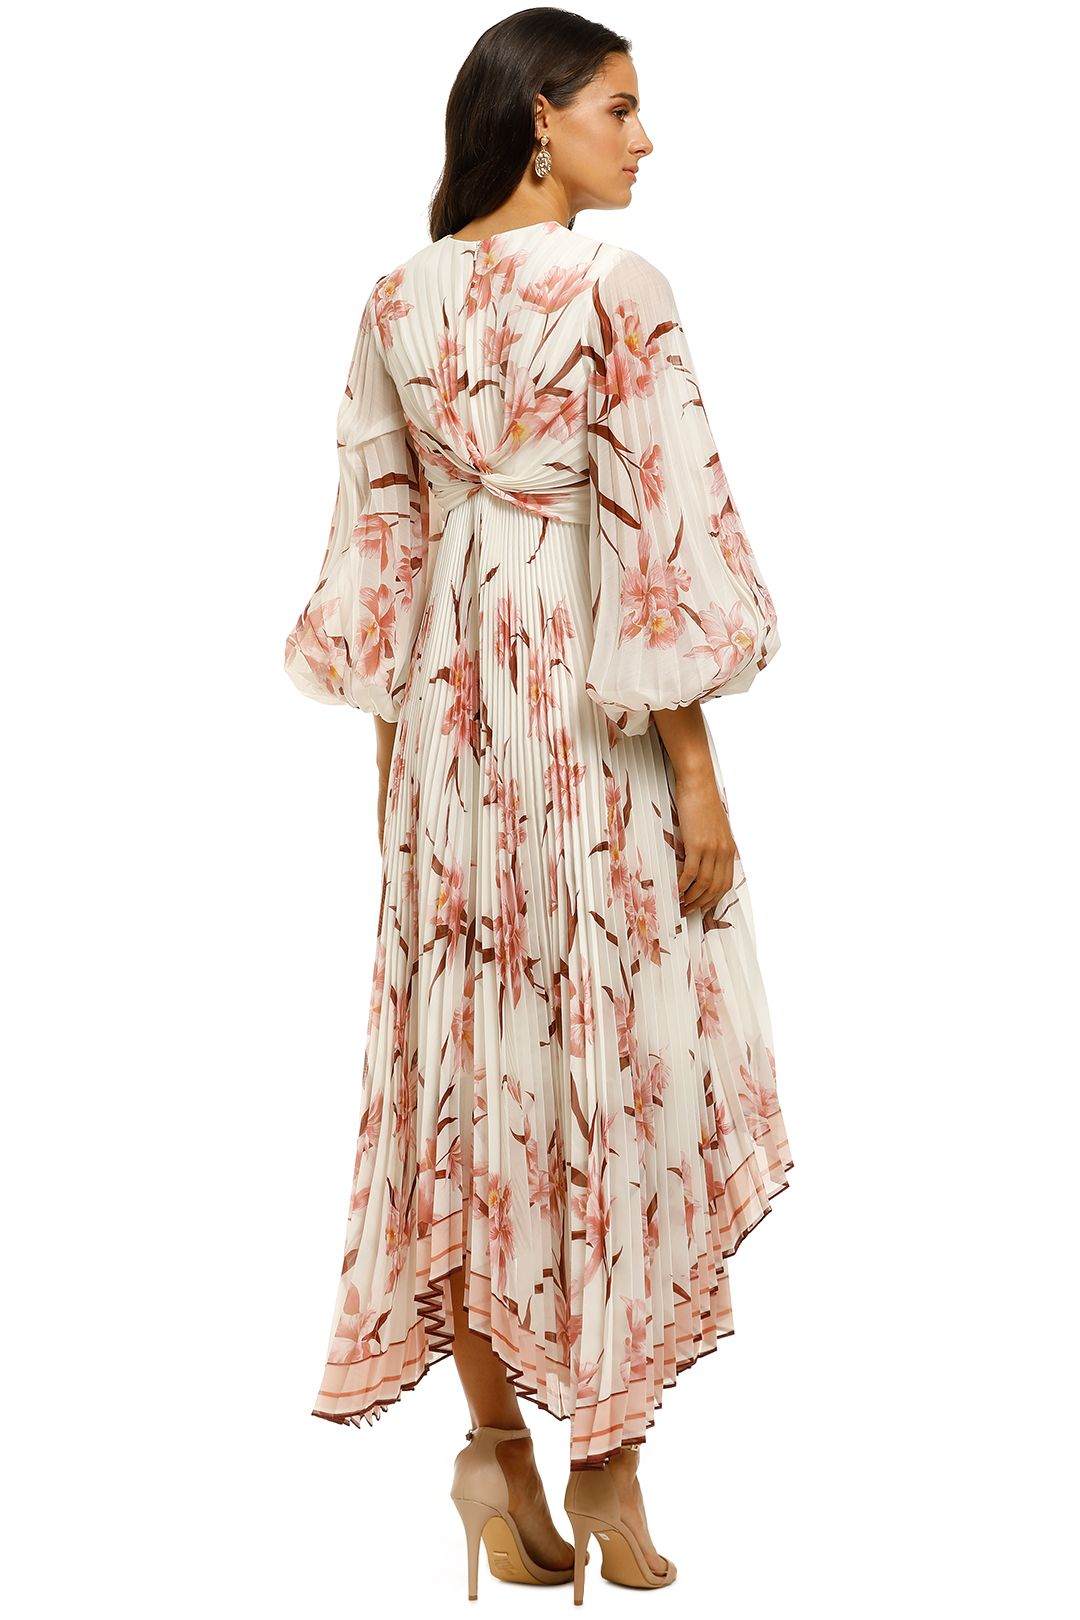 Zimmermann-Corsage-Pleated-Dress-Ivory-Peach-Orchid-Back